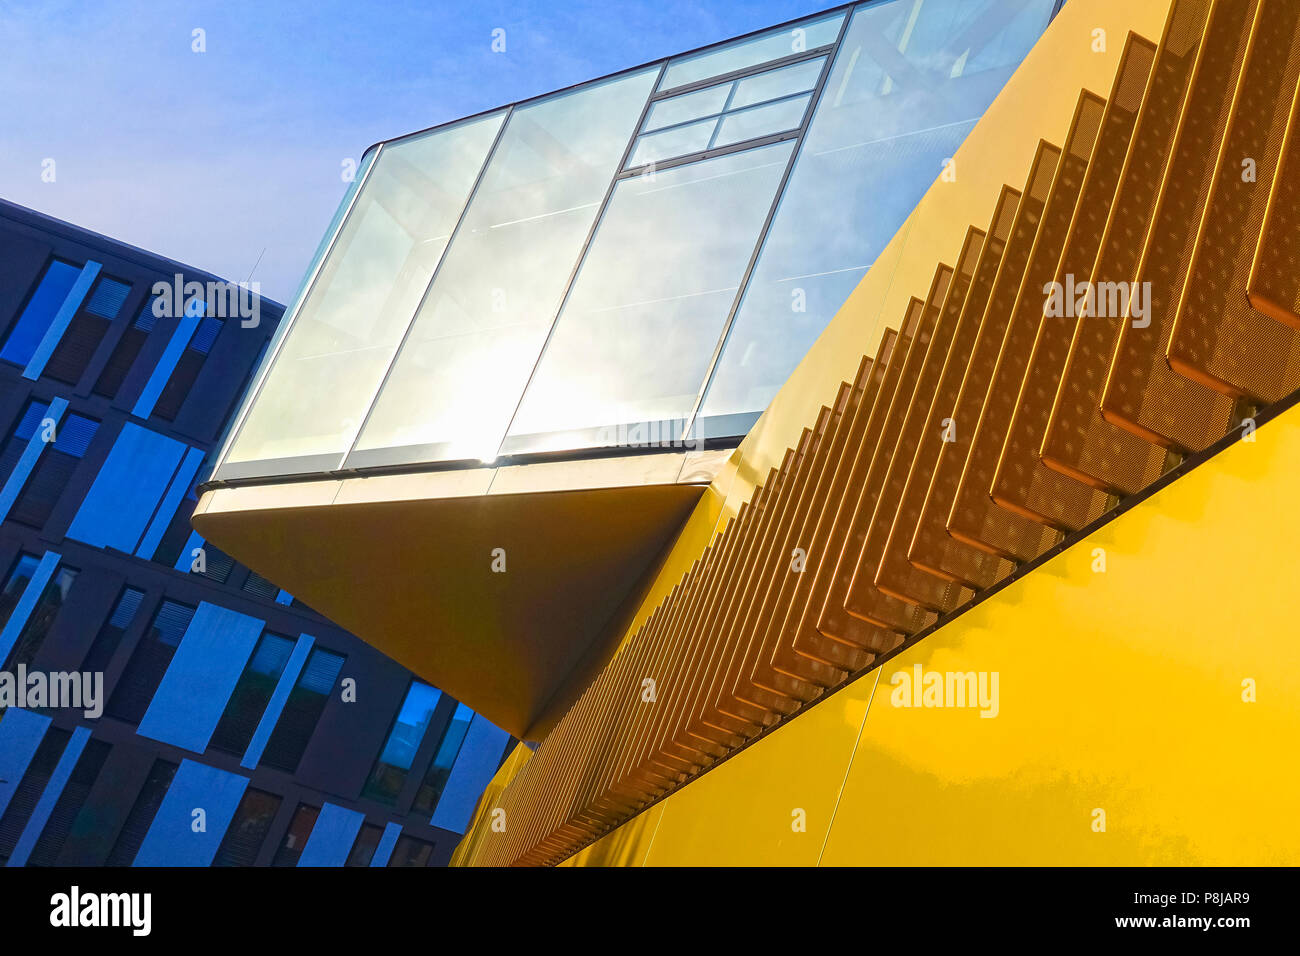 AACHEN, NRW / GERMANY - MARCH 29, 2018: Street view of the modern headquarter office building of the AachenMuenchener insurance company, Aachen. - Stock Image